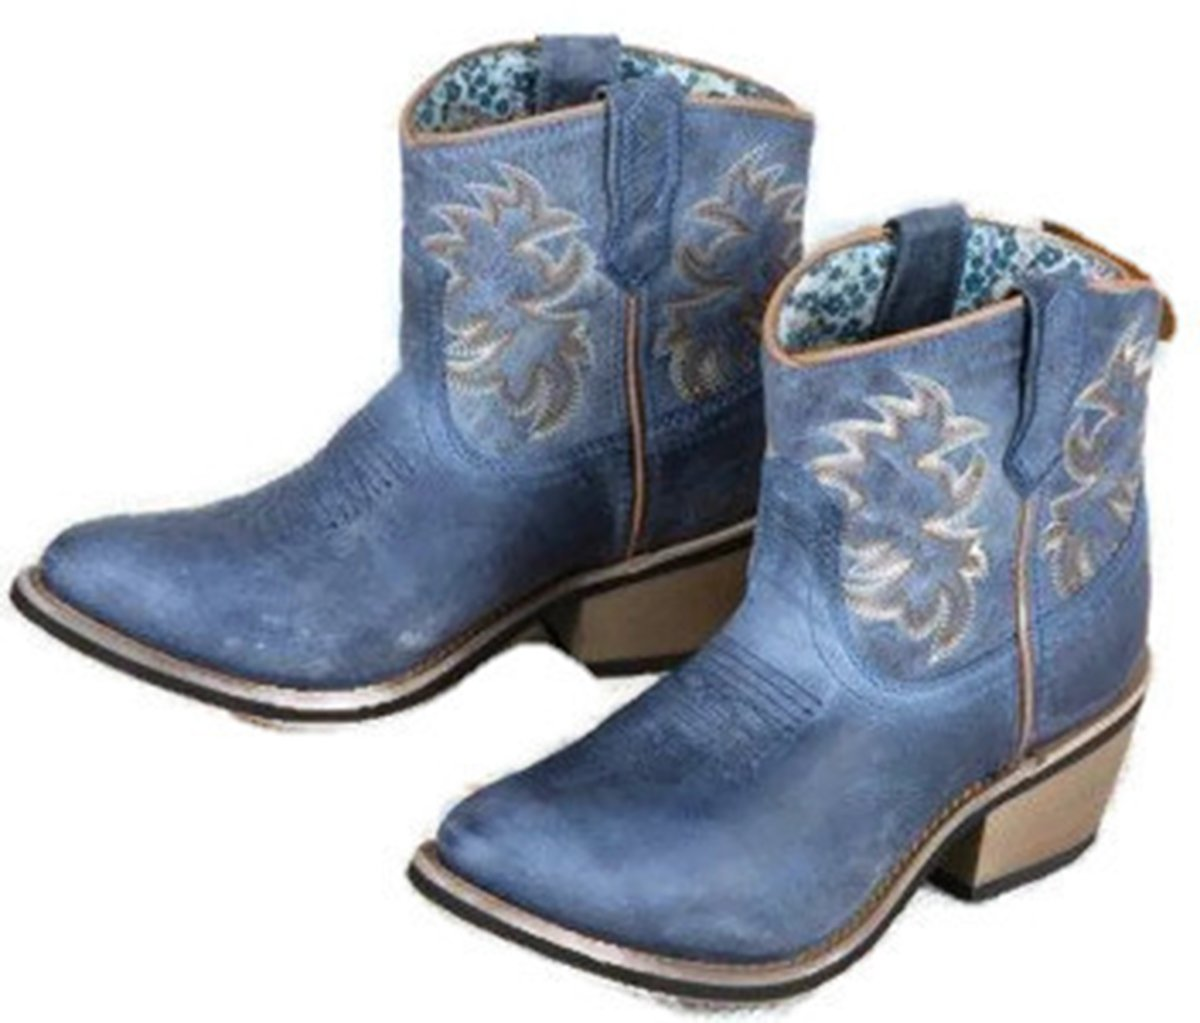 Laredo Women's Sapphyre Leather Western Booties Round Toe - 51026 B01LZGAEXG 10 M US|Navy